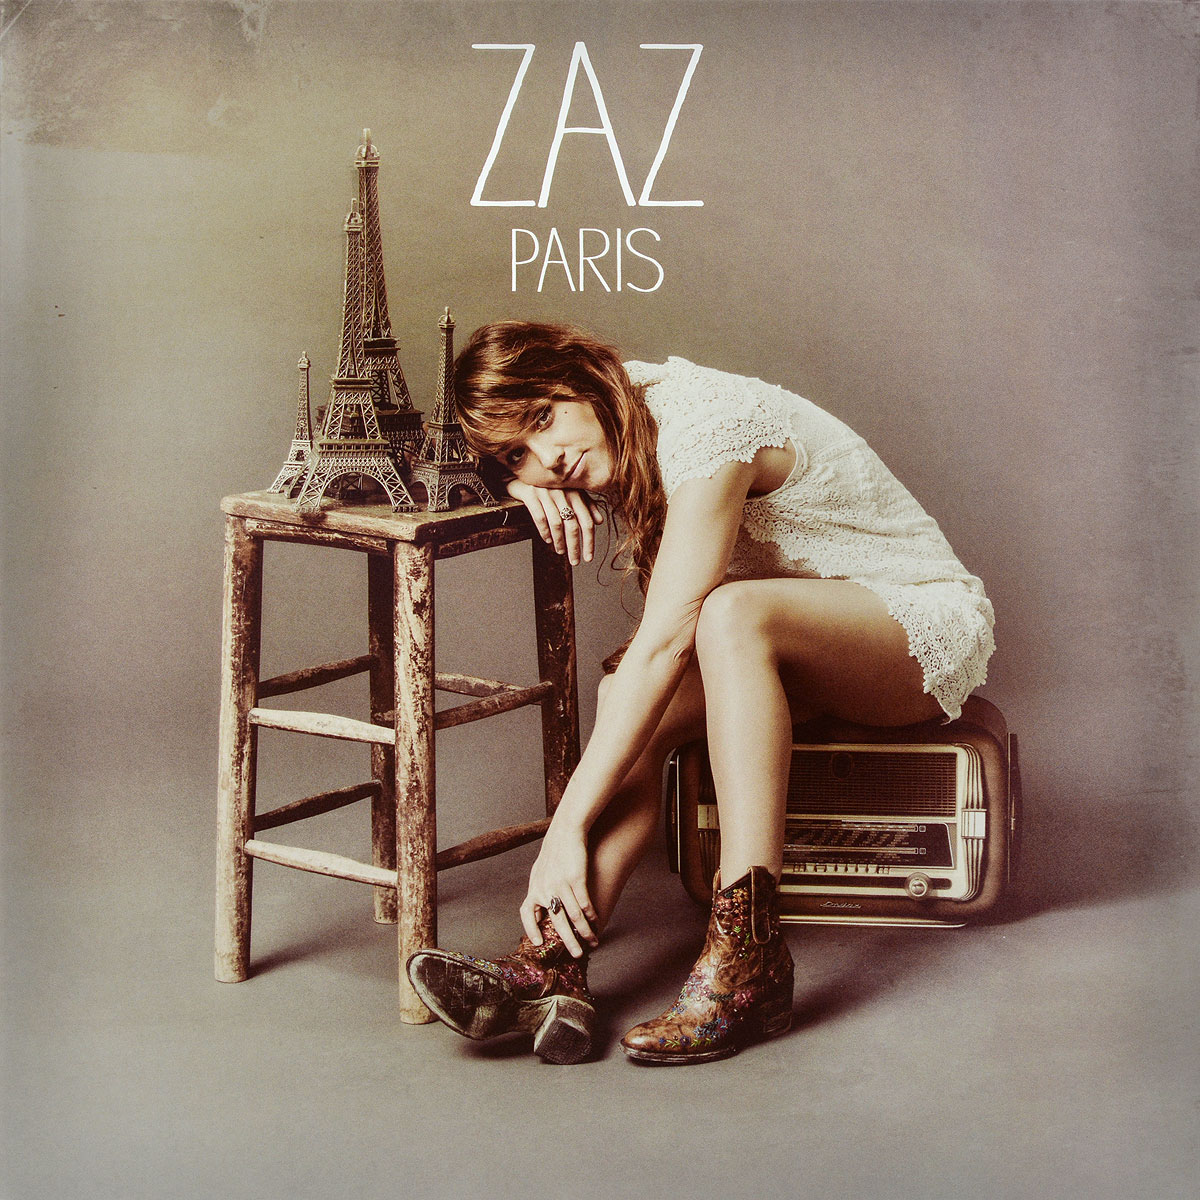 Zaz Zaz. Paris (2 LP) zaz zaz